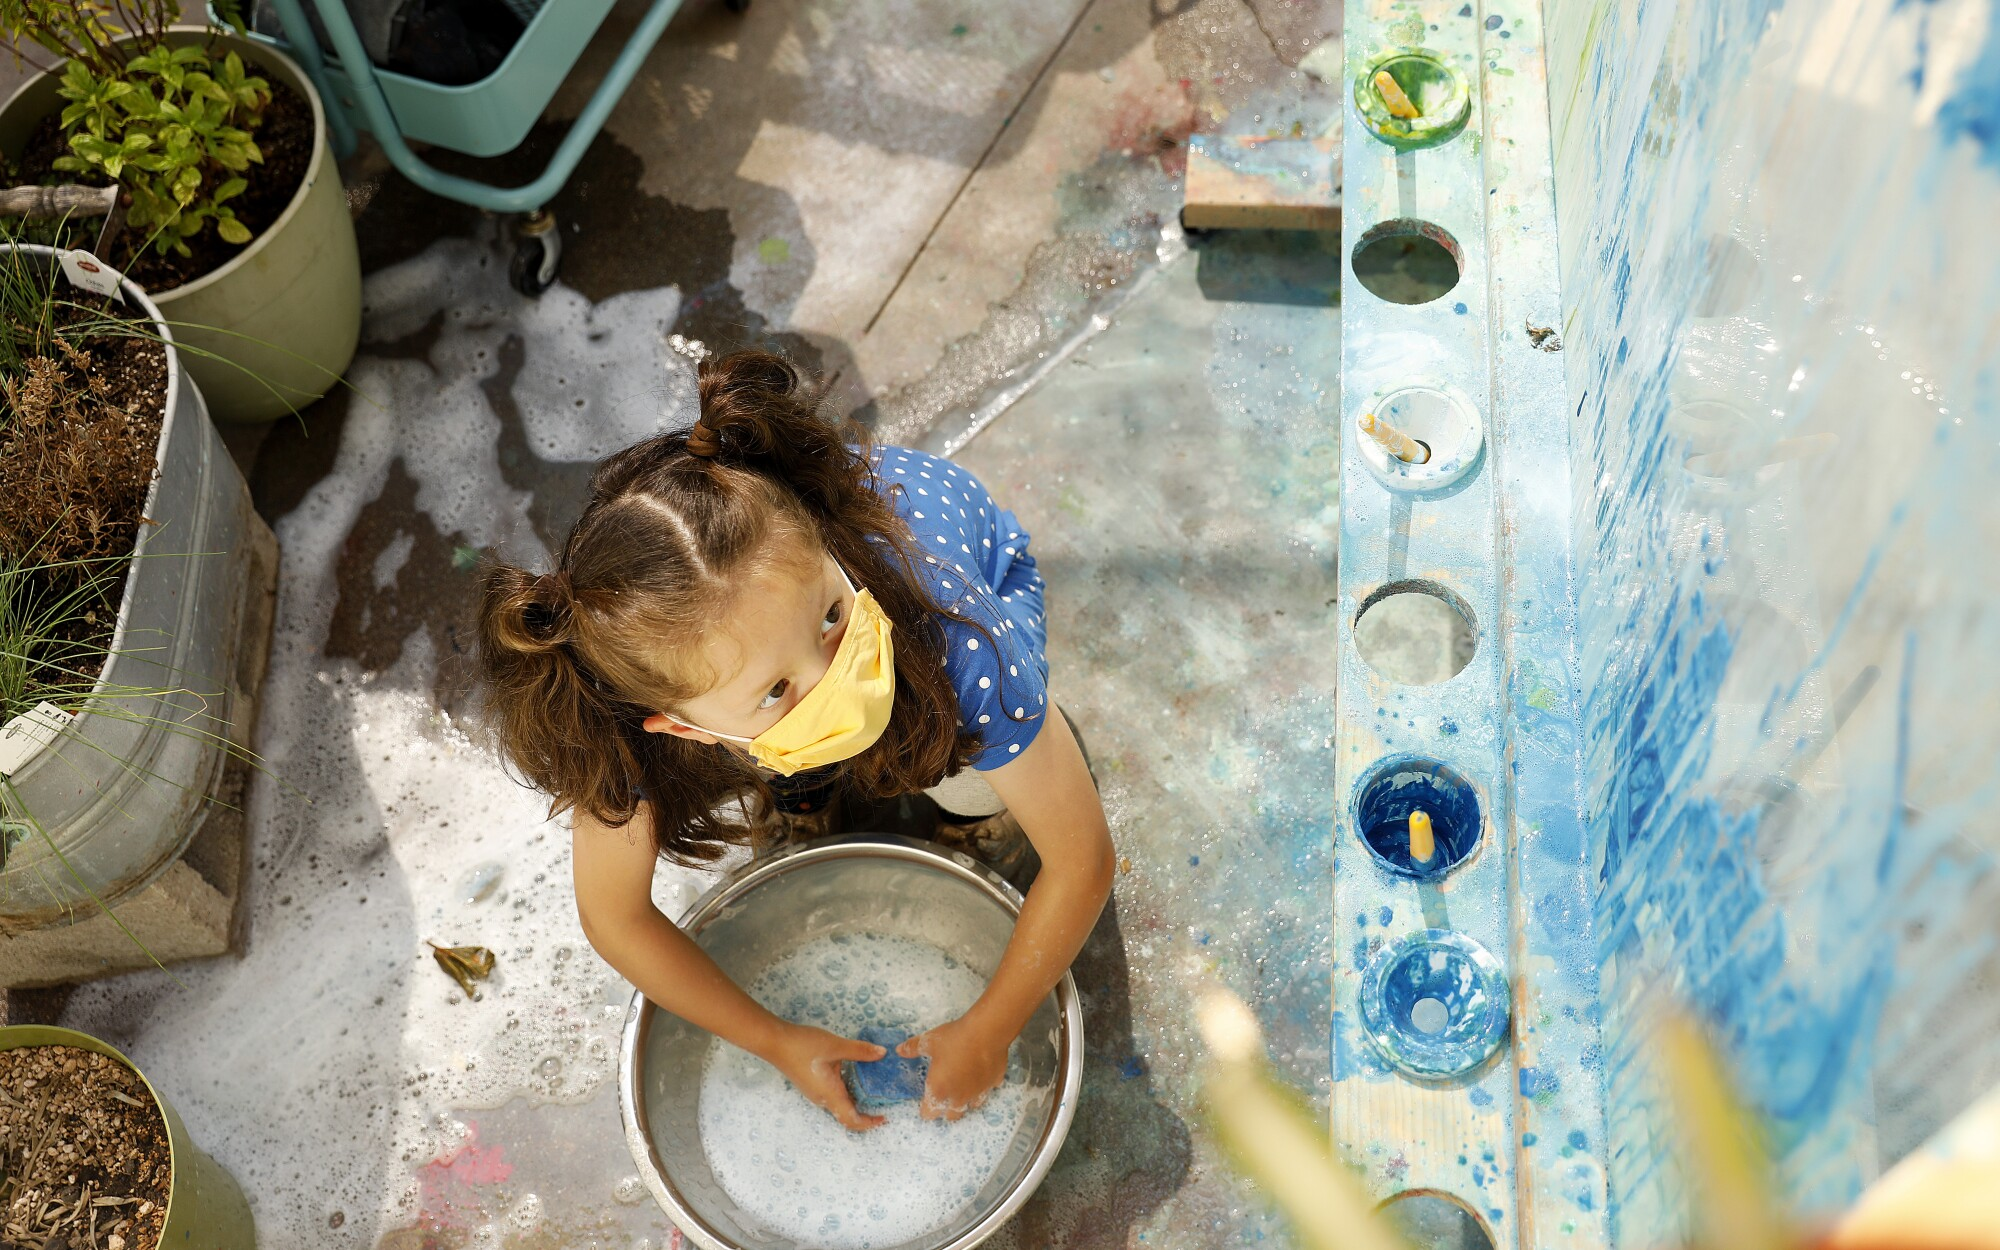 A child wears a mask while painting at Voyages Preschool in Los Angeles.